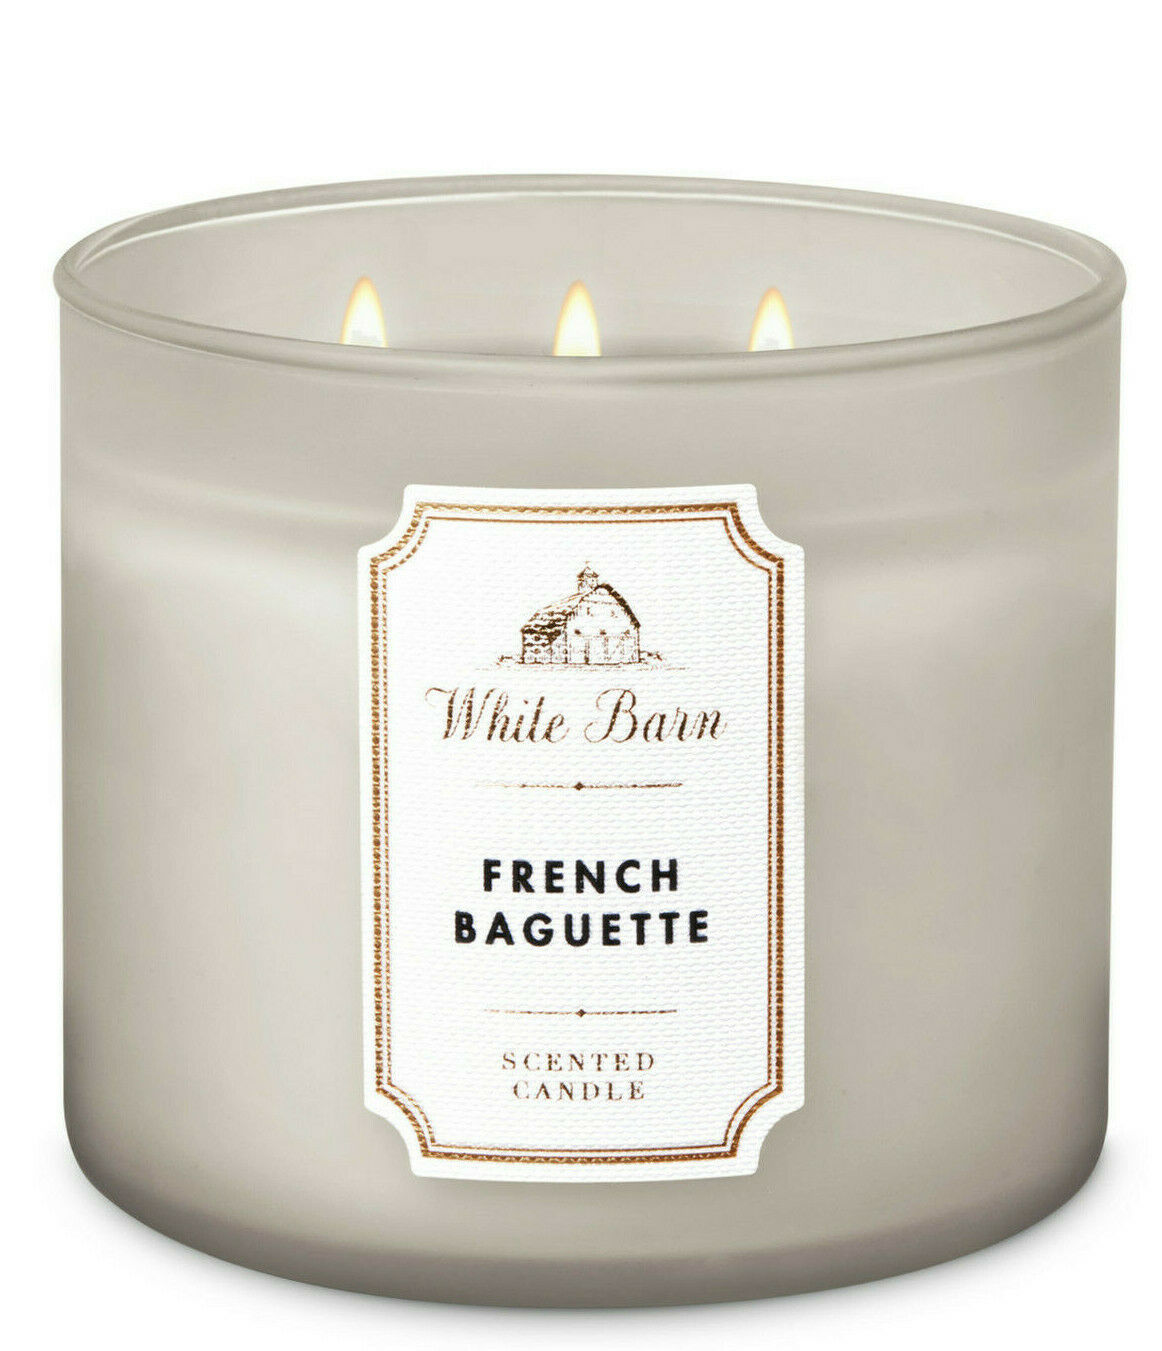 White Barn French Baguette Three Wick.14.5 Ounces Scented Candle